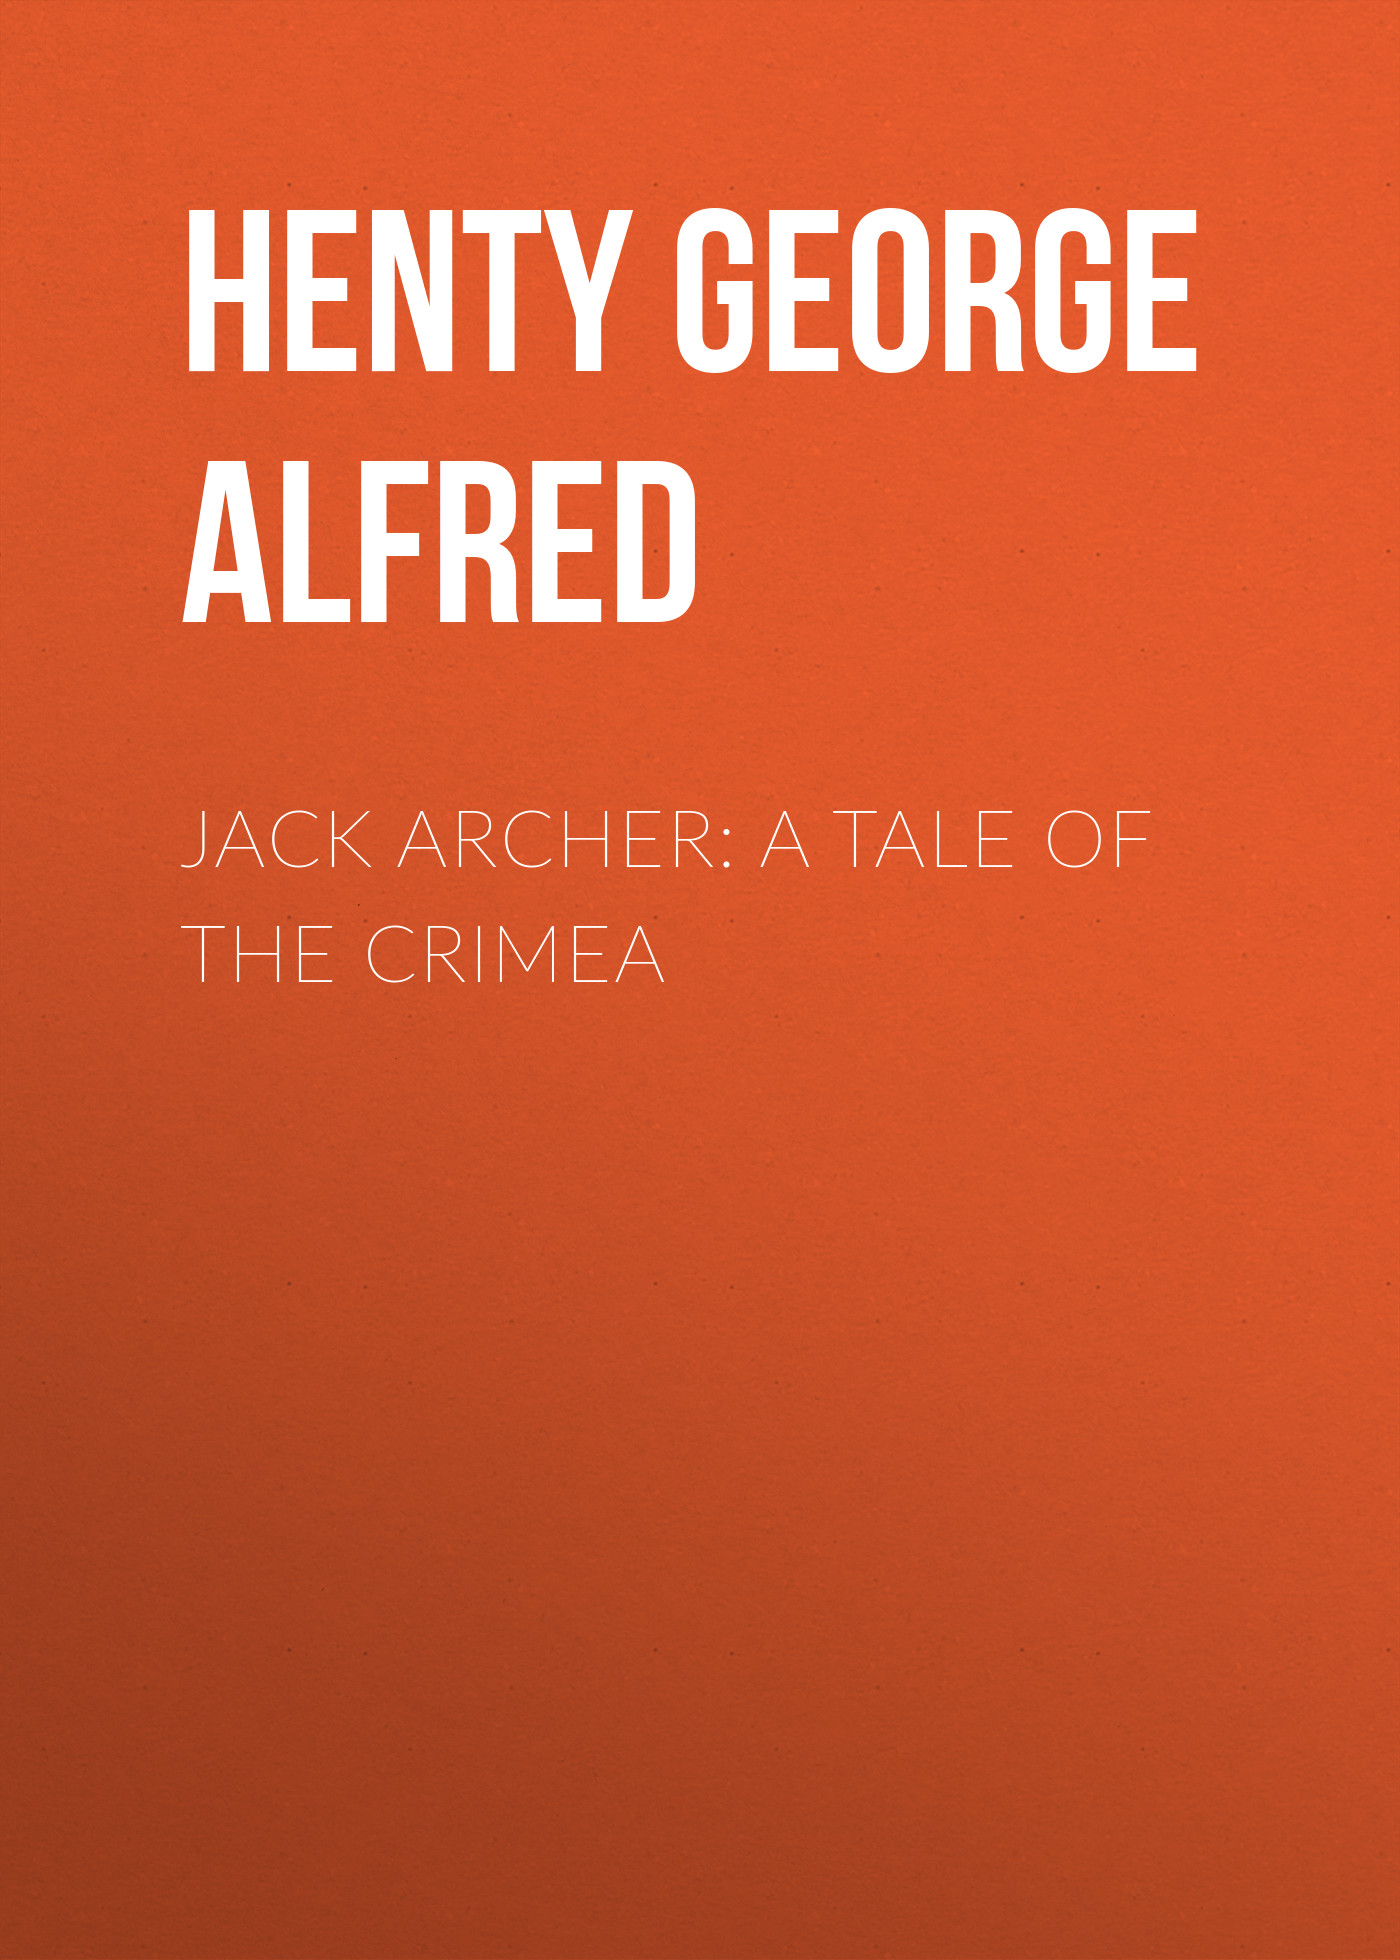 Henty George Alfred Jack Archer: A Tale of the Crimea henty george alfred a search for a secret a novel volume 2